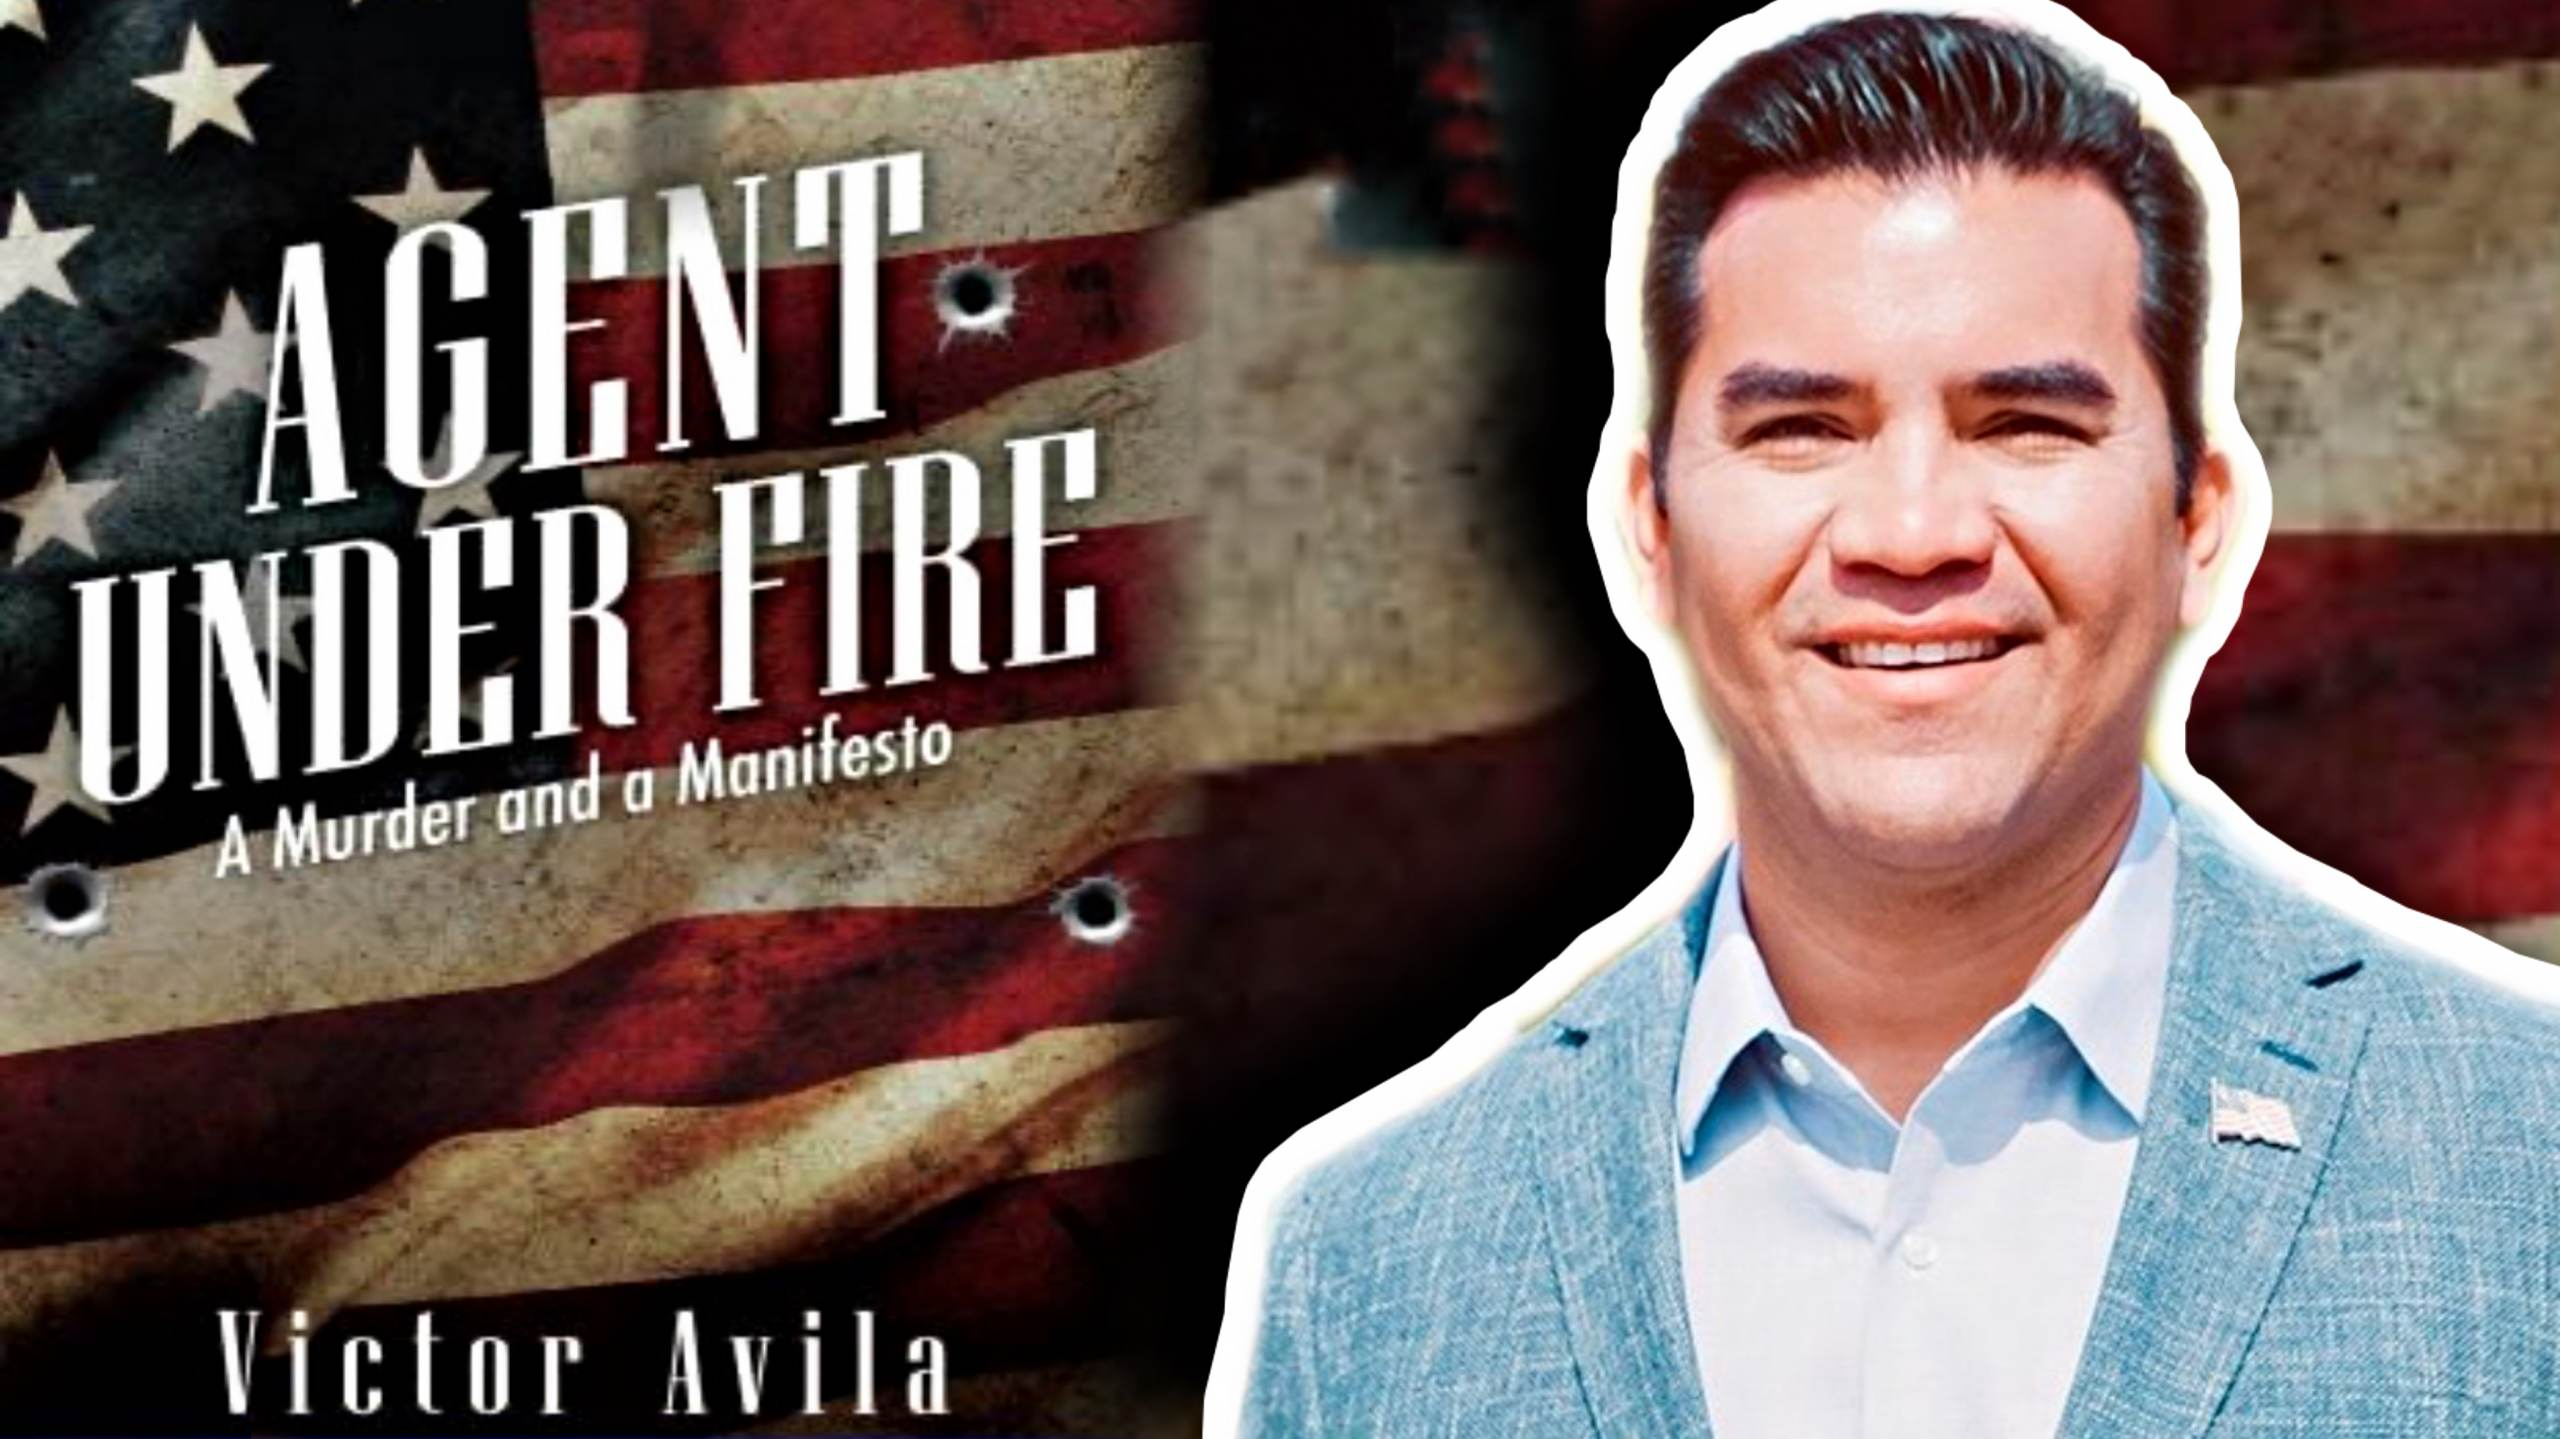 """Agent Under Fire"" – Author and American Hero Victor Avila Speaks Out About the Current Crisis on the Southern Border (VIDEO)"